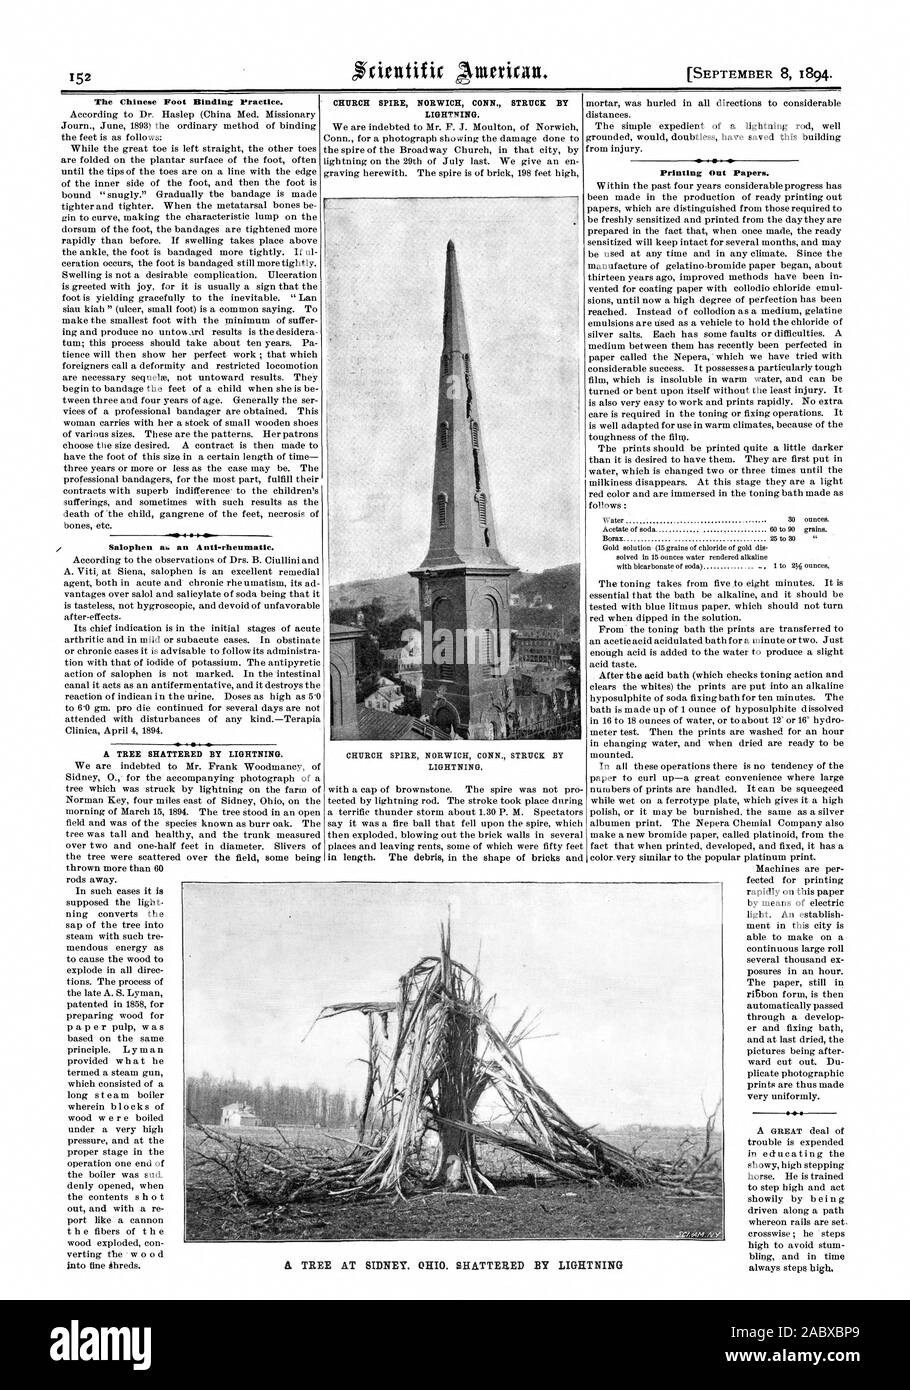 The Chinese Foot Binding Practice. Salophen ak. an Anti-rheumatic. CHURCH SPIRE NORWICH CONN. STRUCK BY LIGHTNING. CHURCH SPIRE NORWICH CONN. STRUCK BY LIGHTNING. Printing Out Papers. A TREE AT SIDNEY. OHIO. SHATTERED BY LIGHTNING, scientific american, 1894-09-08 Stock Photo